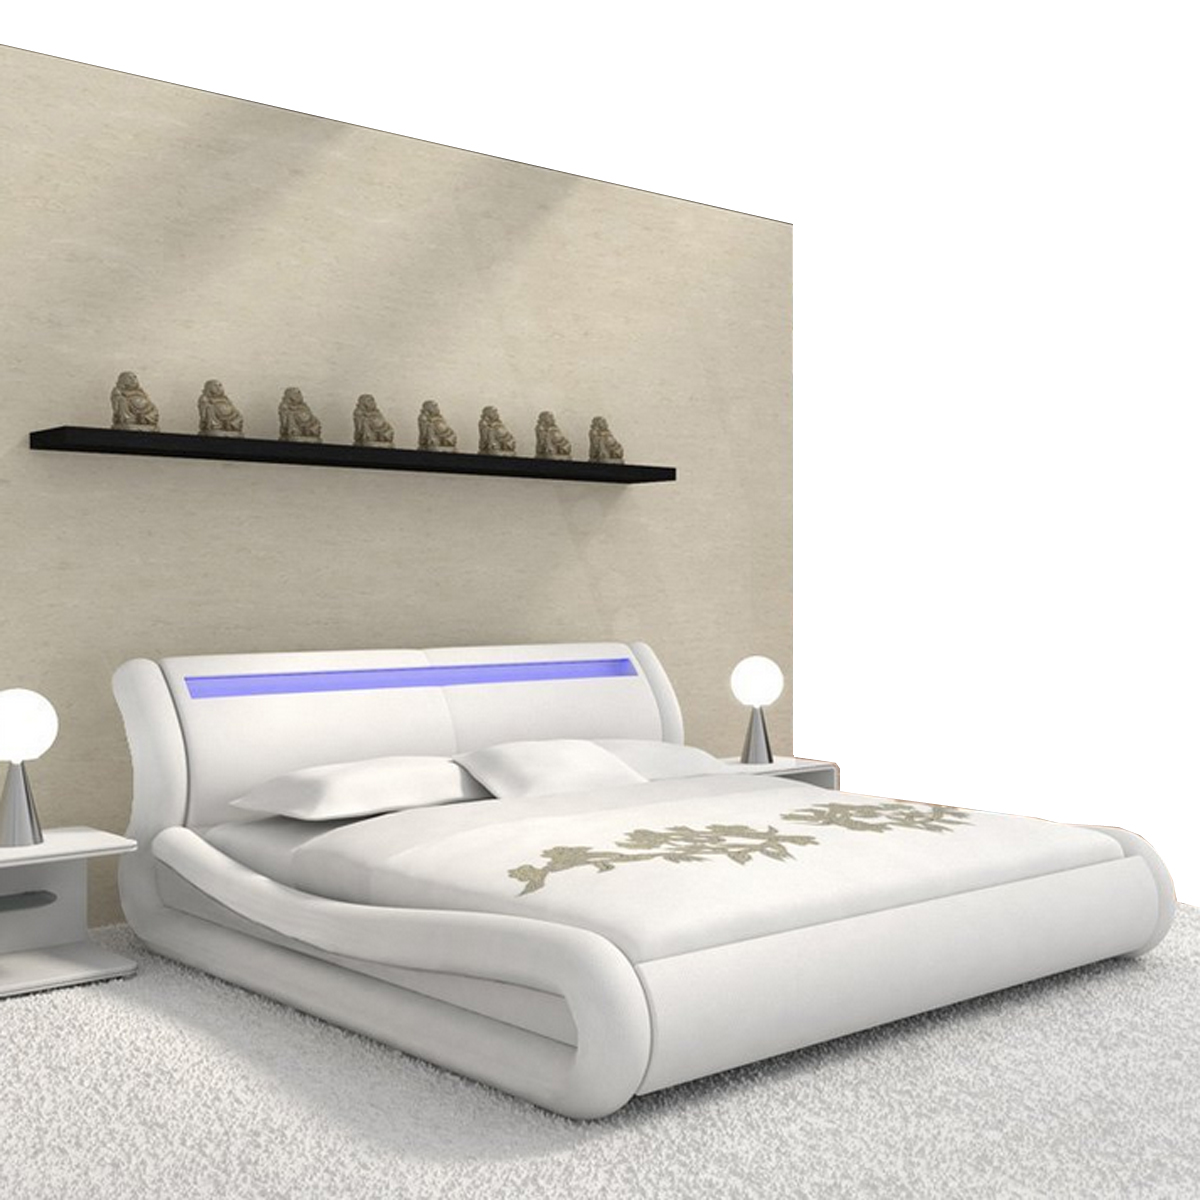 doppelbett polsterbett nios bett 180x200 in wei mit beleuchtung ebay. Black Bedroom Furniture Sets. Home Design Ideas